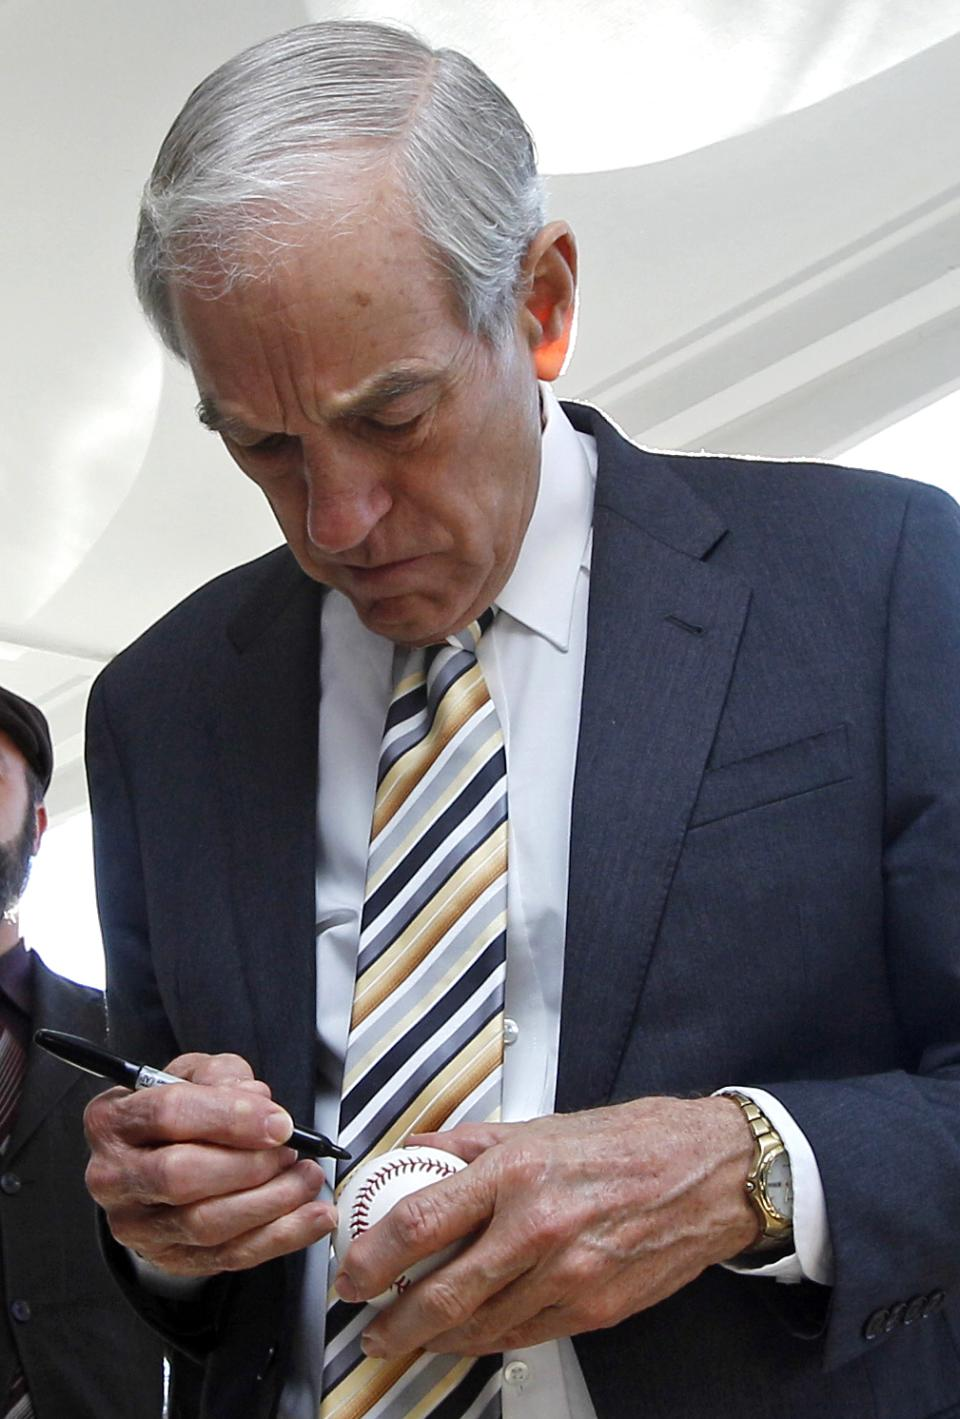 Republican presidential candidate Rep. Ron Paul, R-Texas, signs an autograph on a baseball while campaigning in Exeter, N.H., Tuesday Dec. 20, 2011. (AP Photo/Charles Krupa)